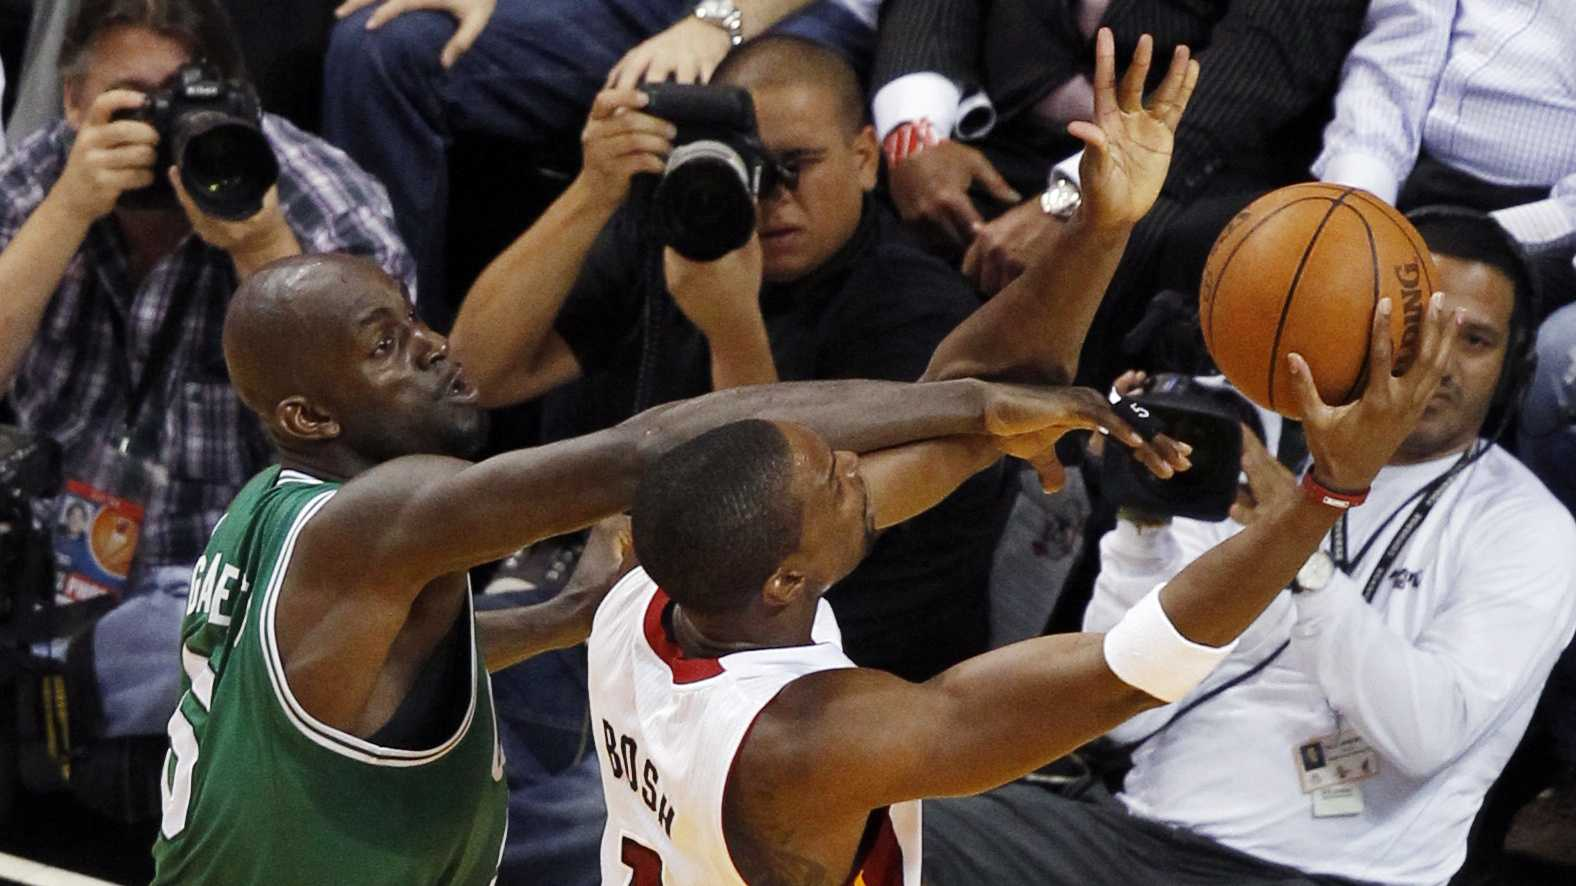 Miami Heat's Chris Bosh is fouled by Kevin Garnett during the first half of Game 5.